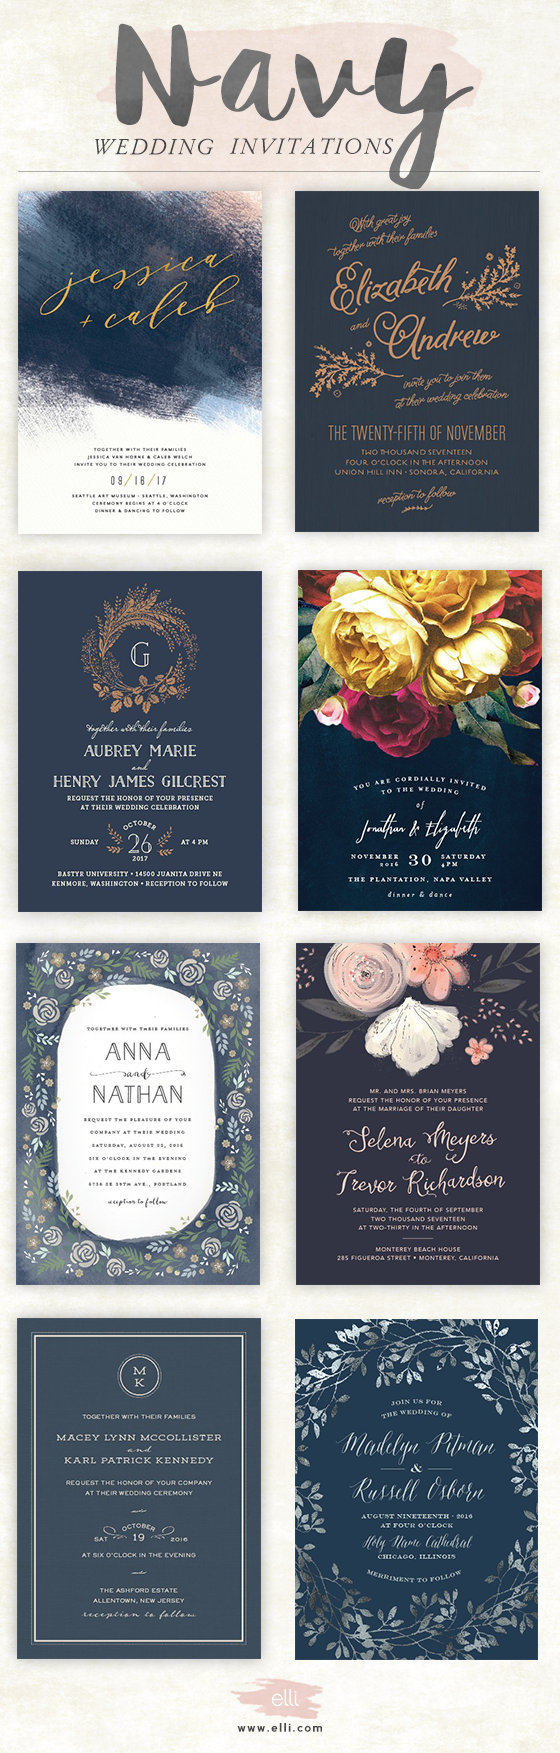 time wedding invitatiowording%0A Now trending  navy wedding invitations from Elli com